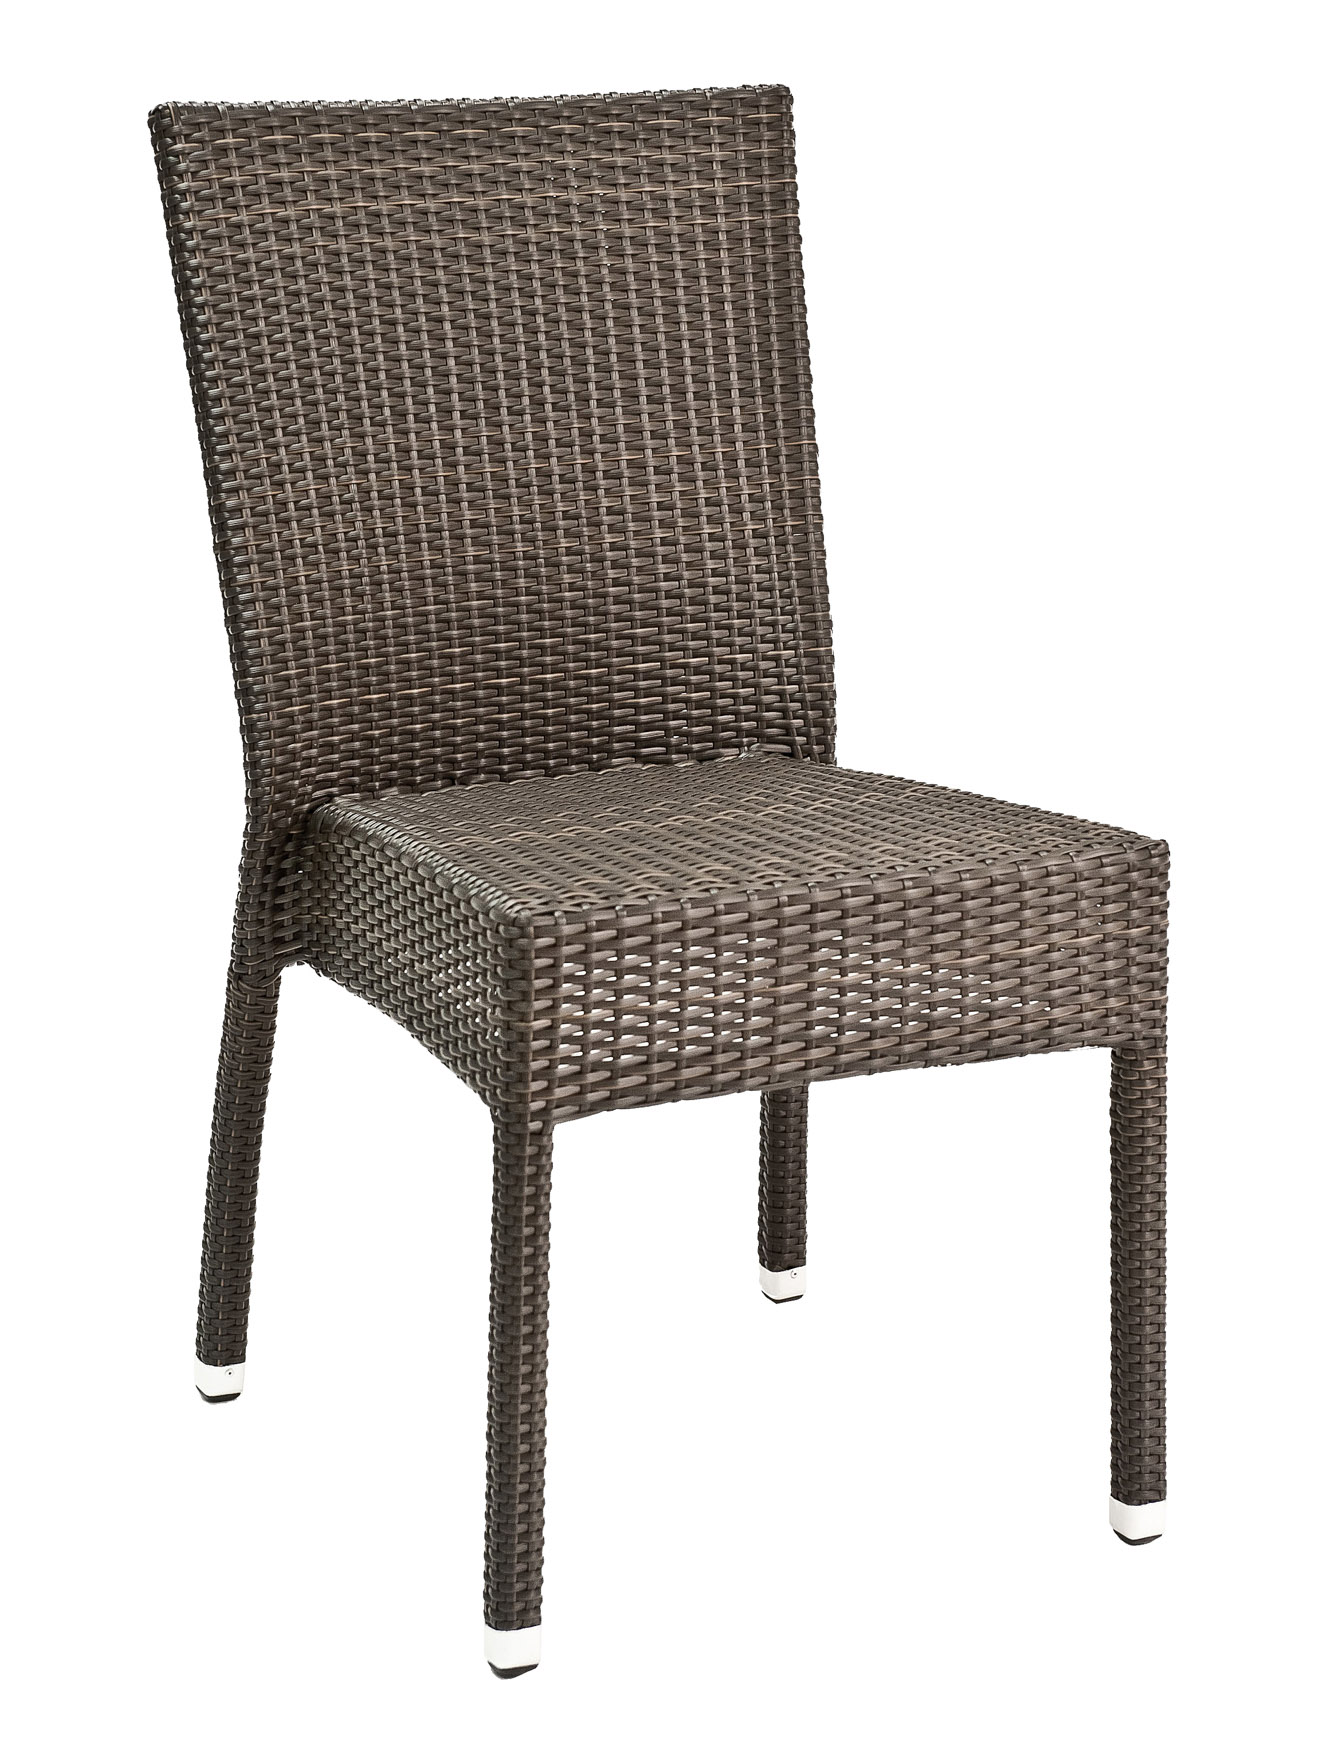 Key West Wicker Side Chair